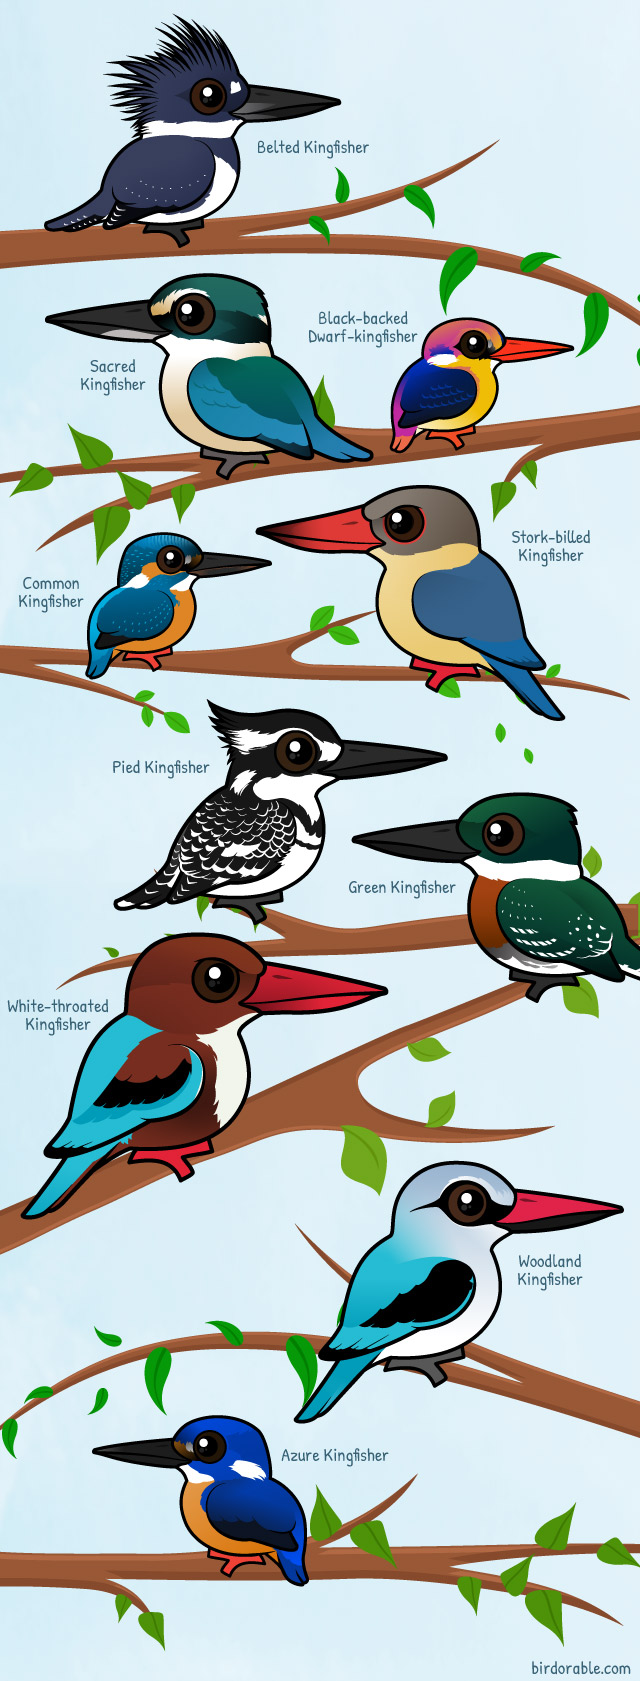 Ten Birdorable Kingfishers